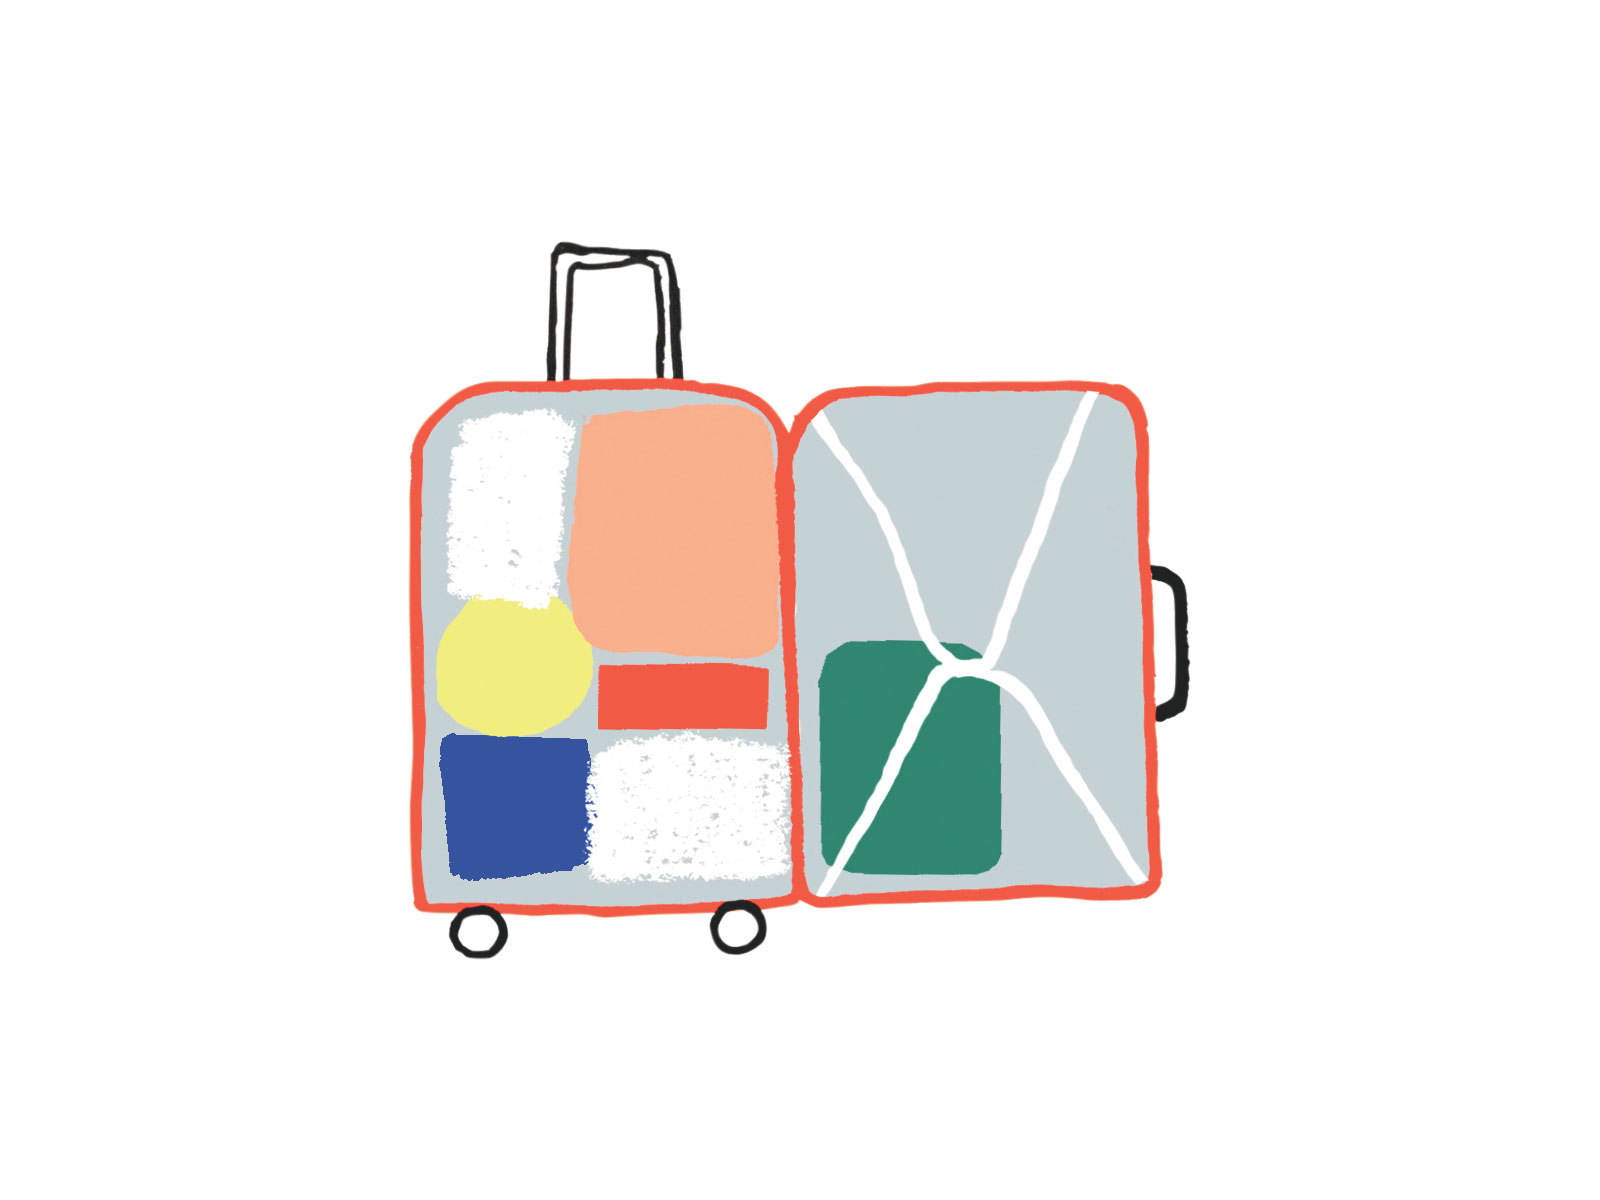 Illo: Packed carry-on suitcase (0618SIM)